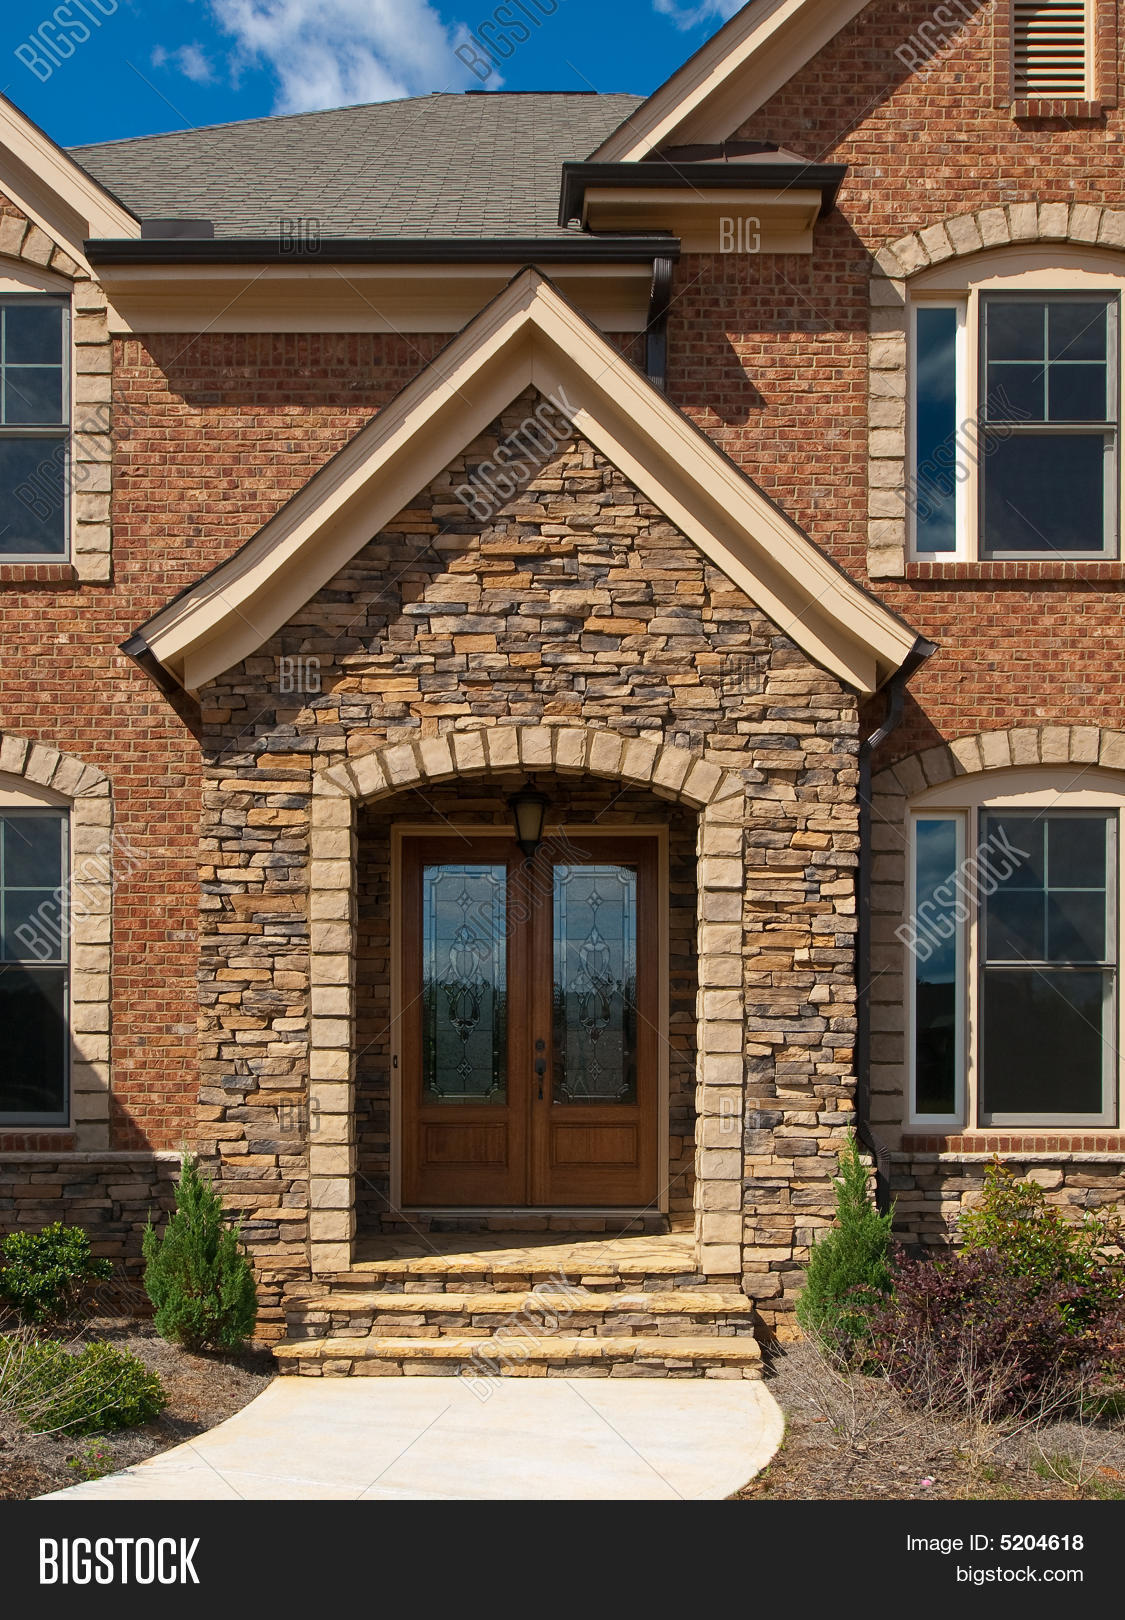 luxury model home exterior stone arch front entrance - Luxury Stone Exterior